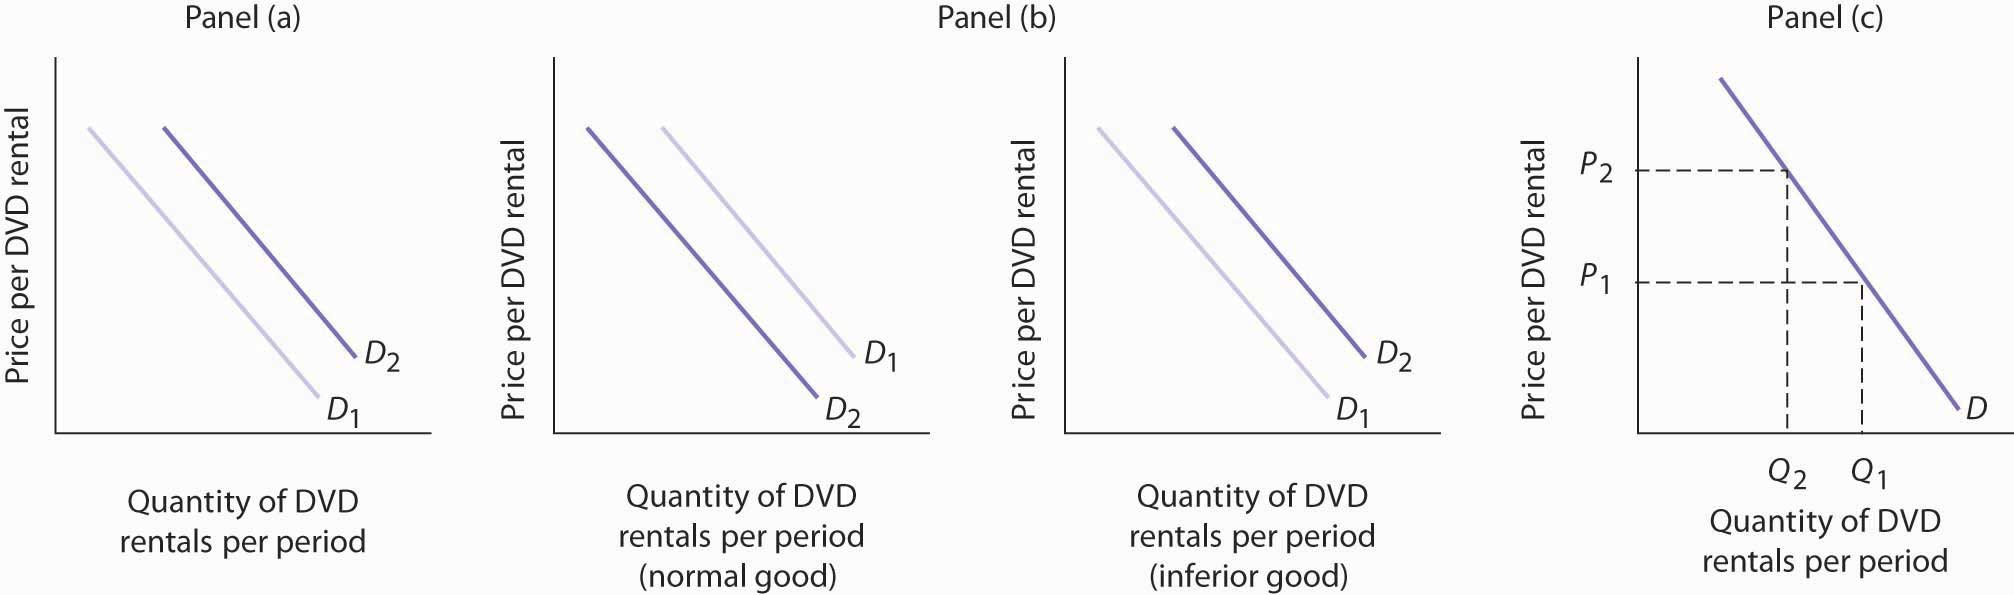 Graphs of quantities of DVD rentals